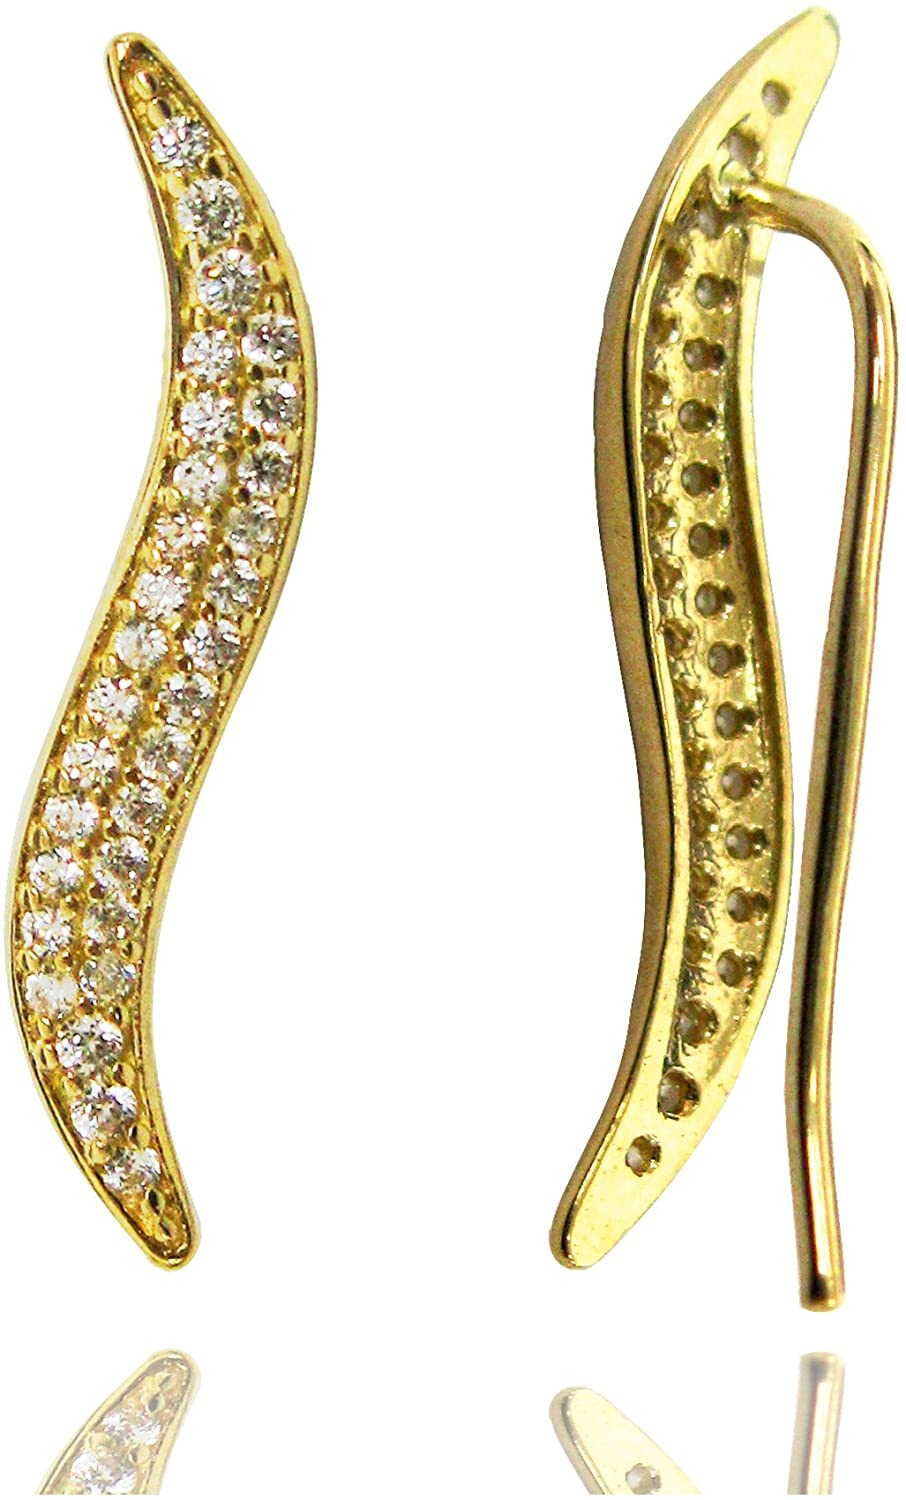 Ritastephens 14k Yellow or White Gold Wave Cubic Zirconia Ear Climber Crawler Earrings